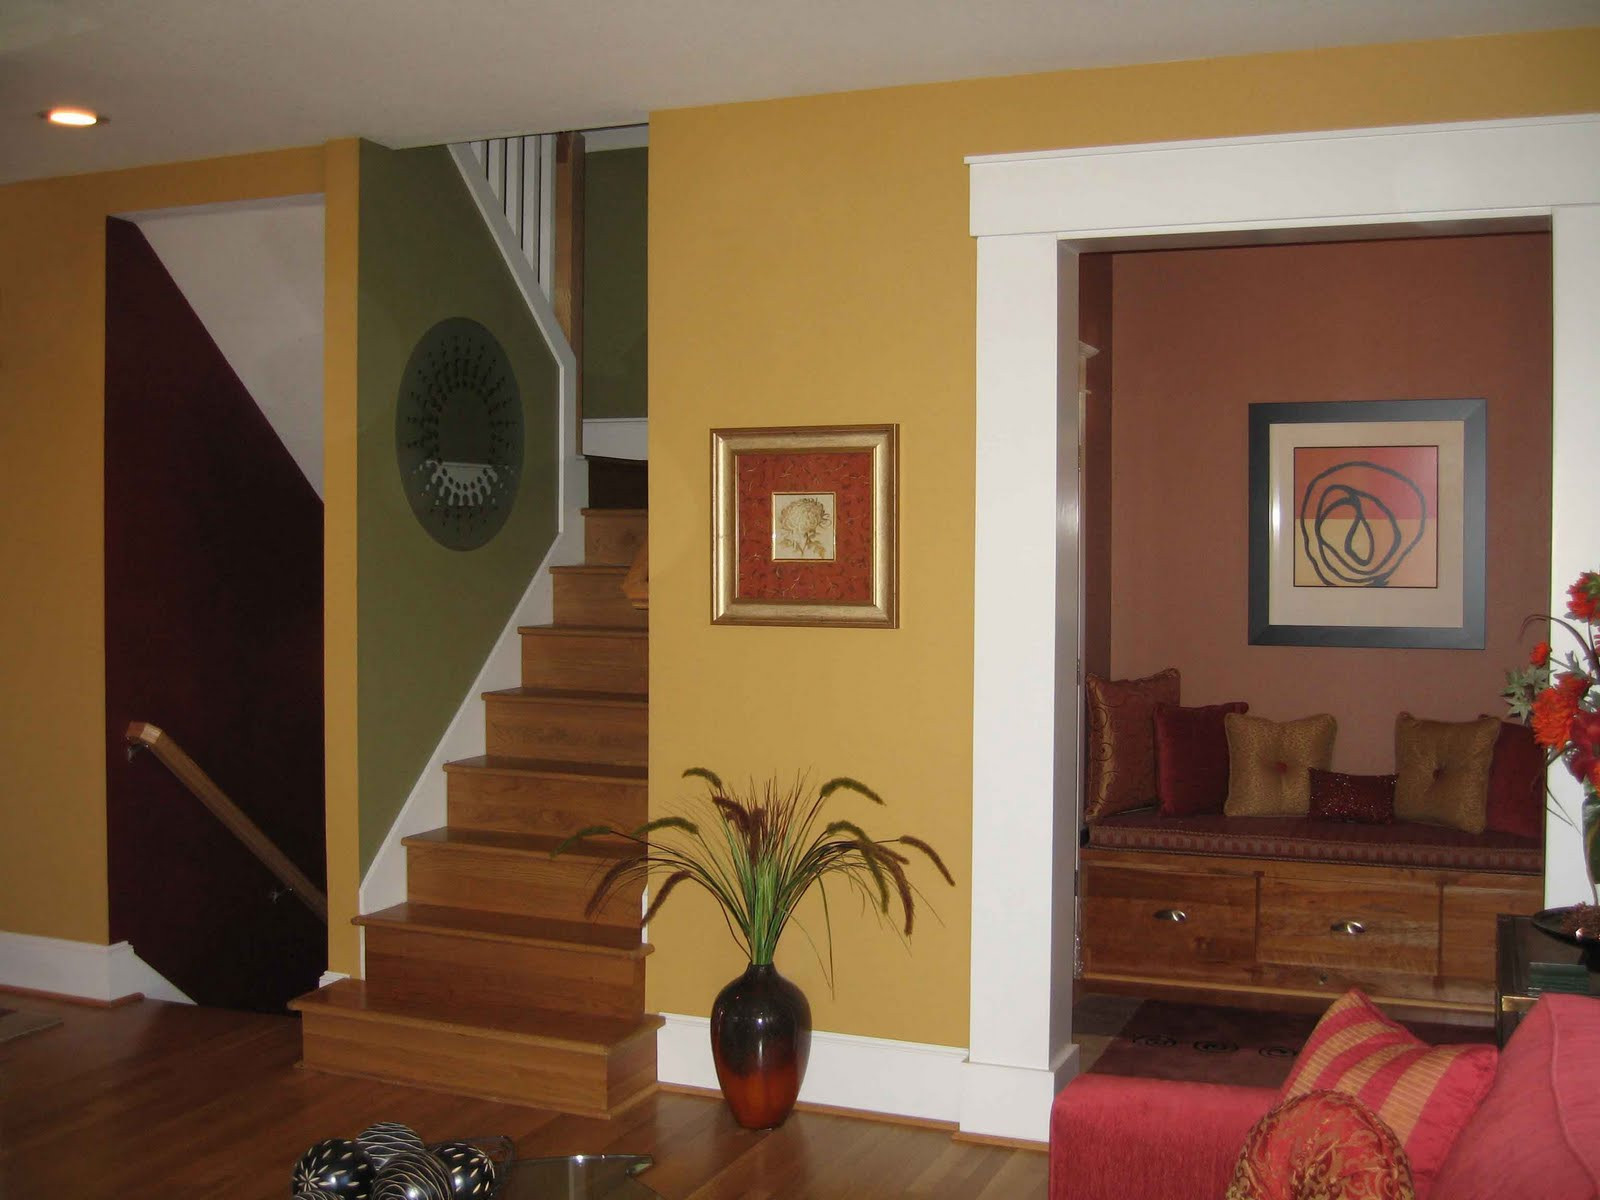 Best ideas about Interior Paint Colors . Save or Pin Interior Spaces Now.